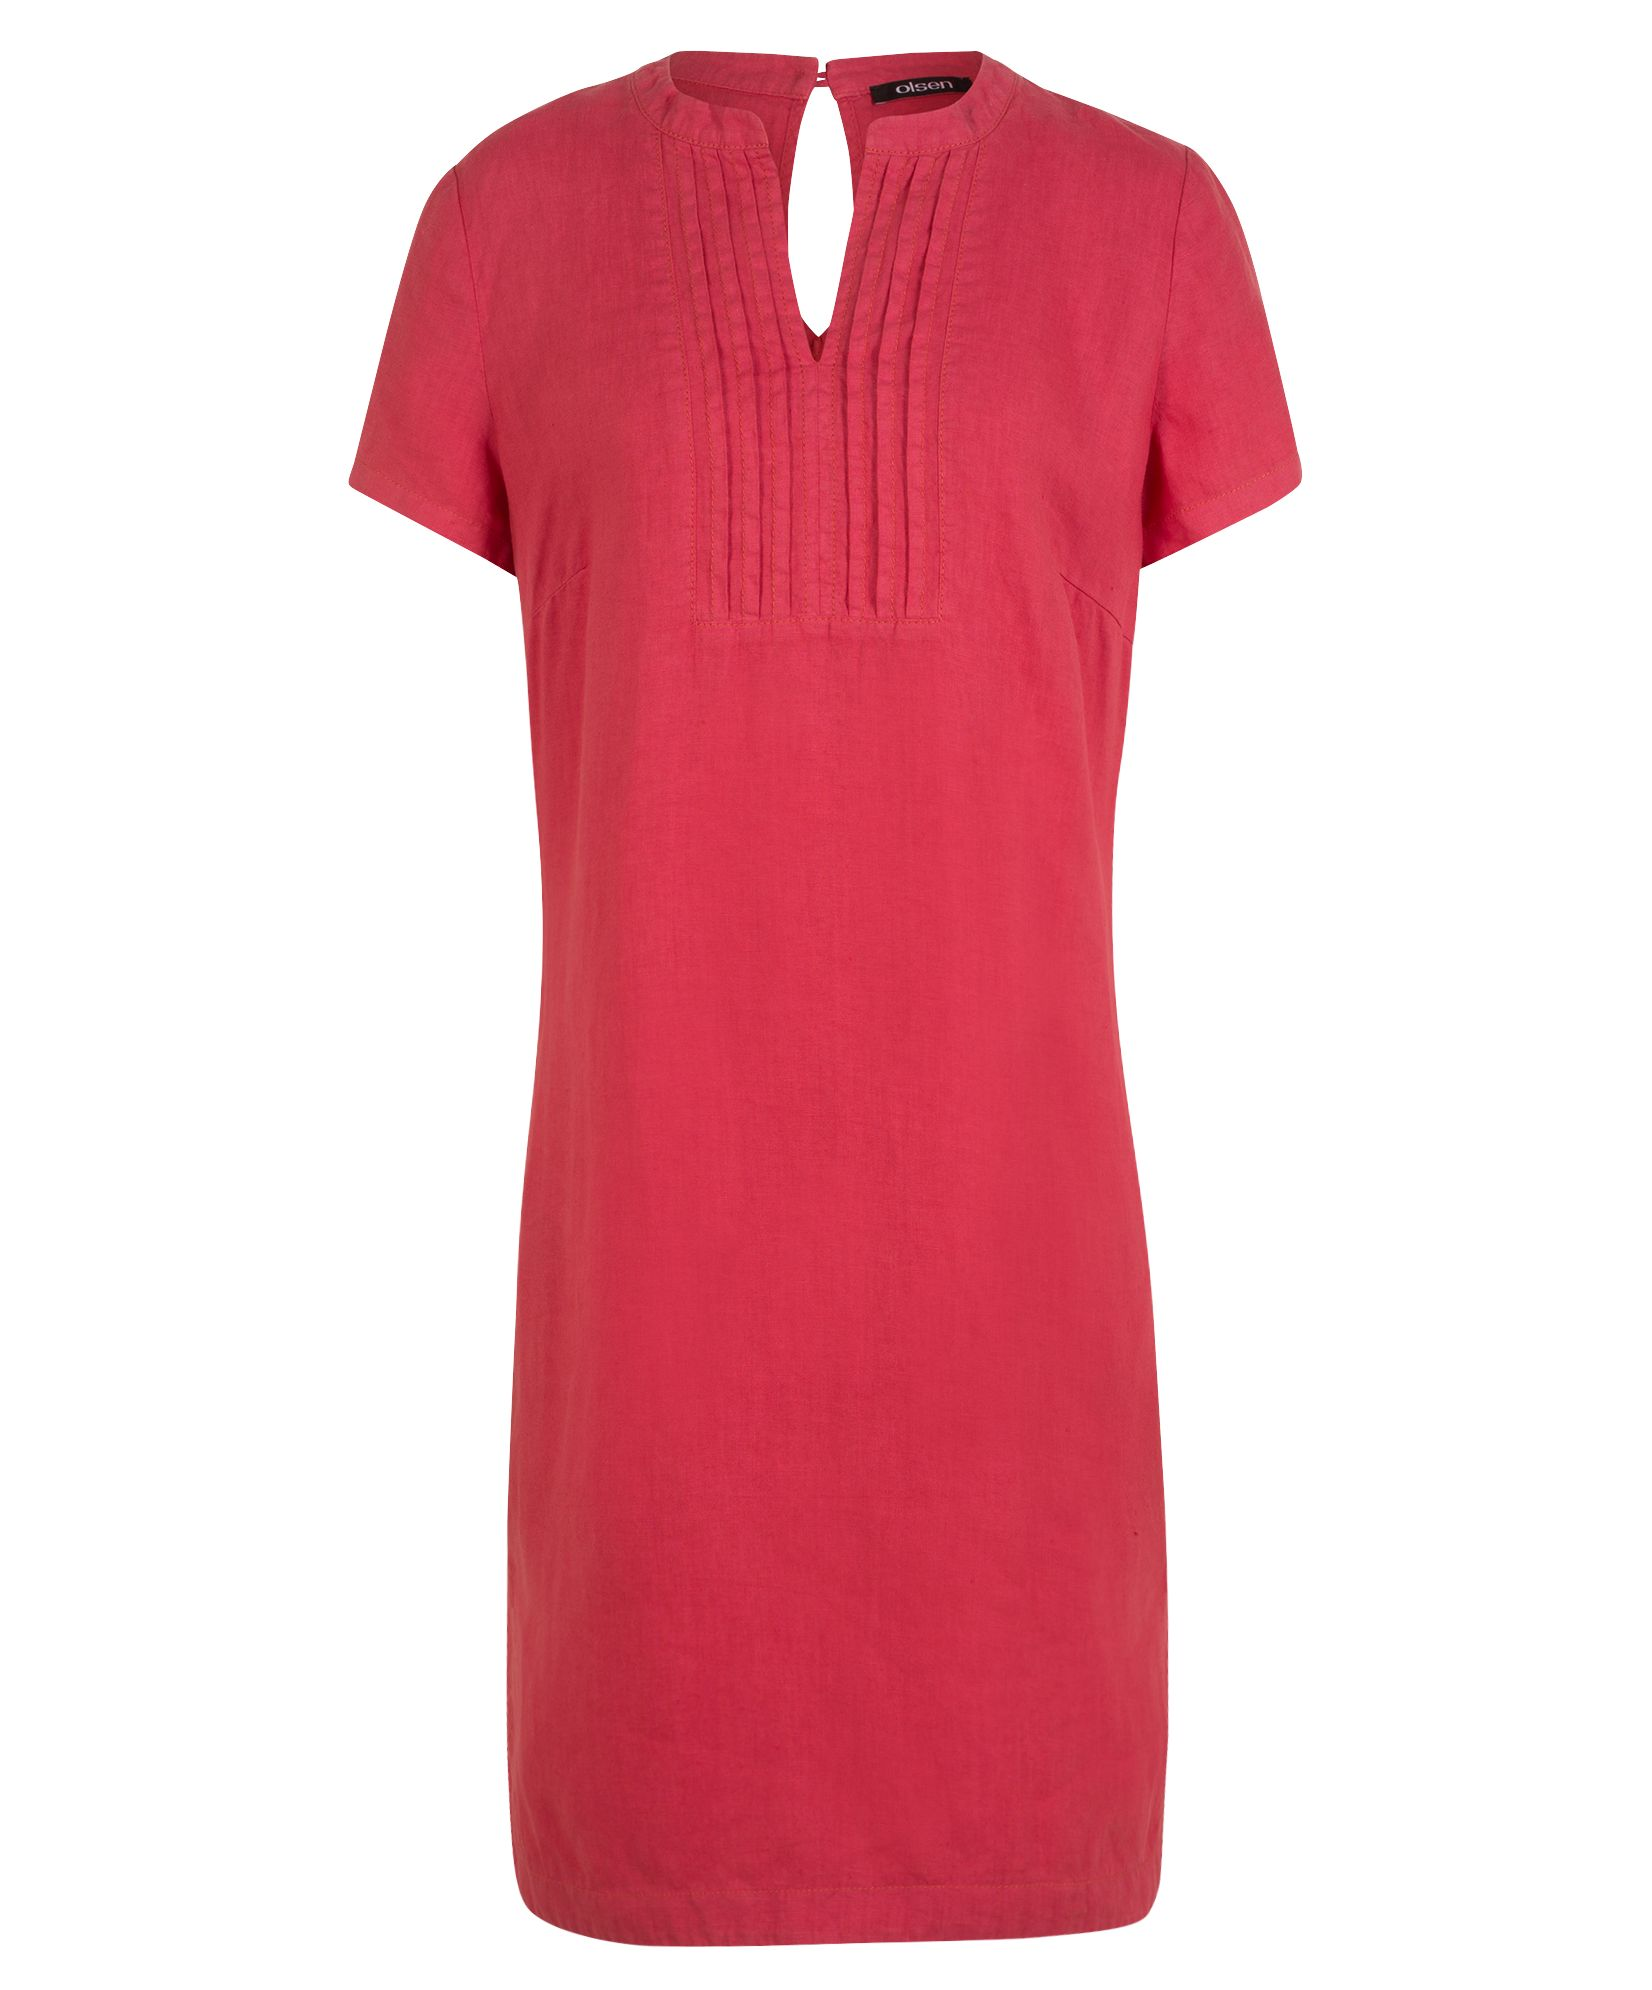 Olsen Dress Woven Short, Red